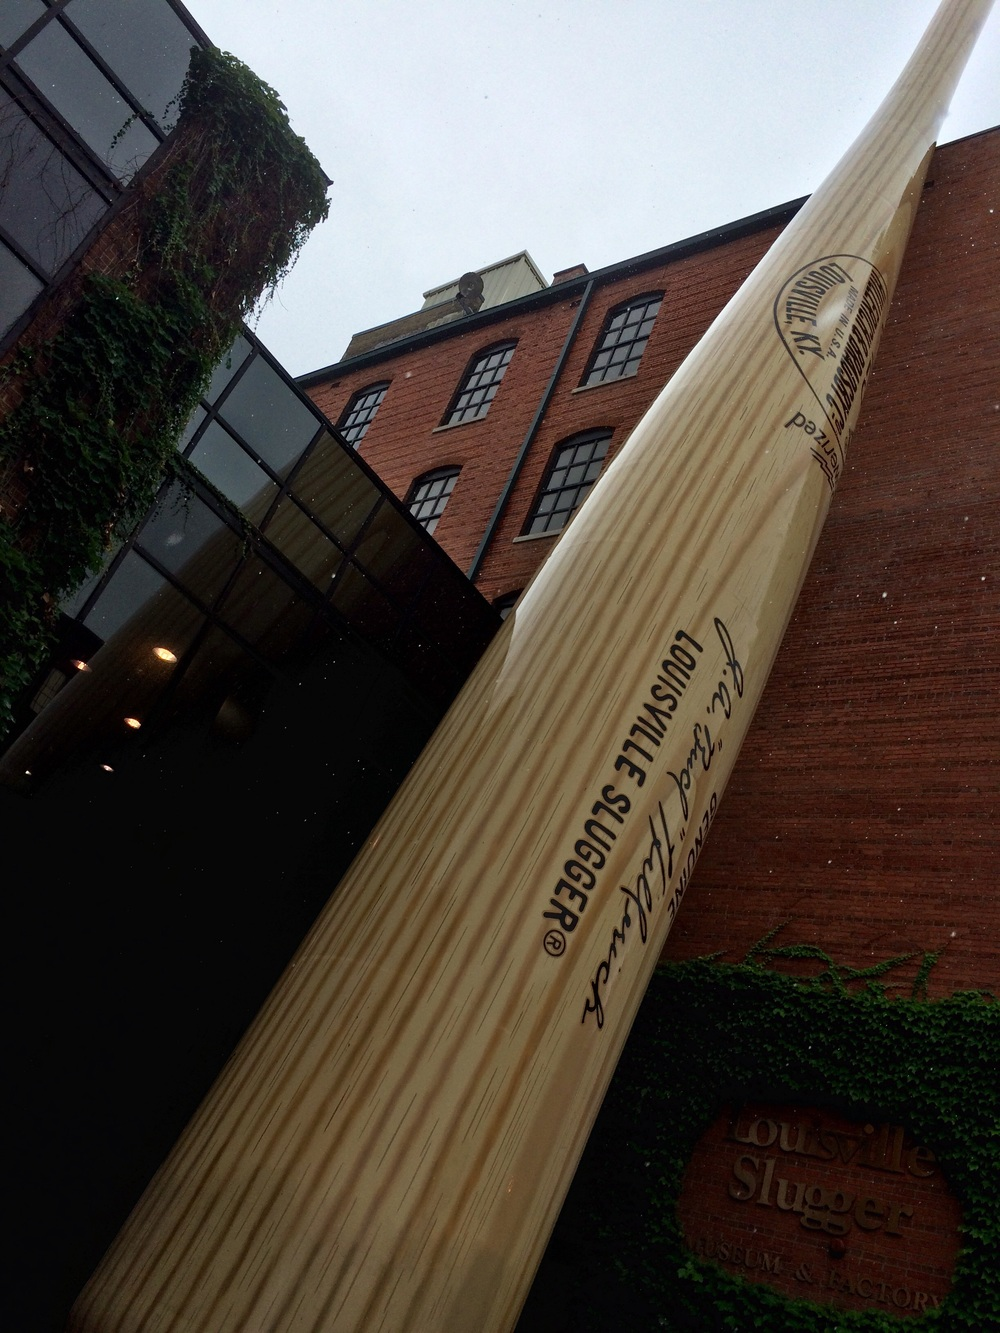 Louisville slugger factory and meuseum